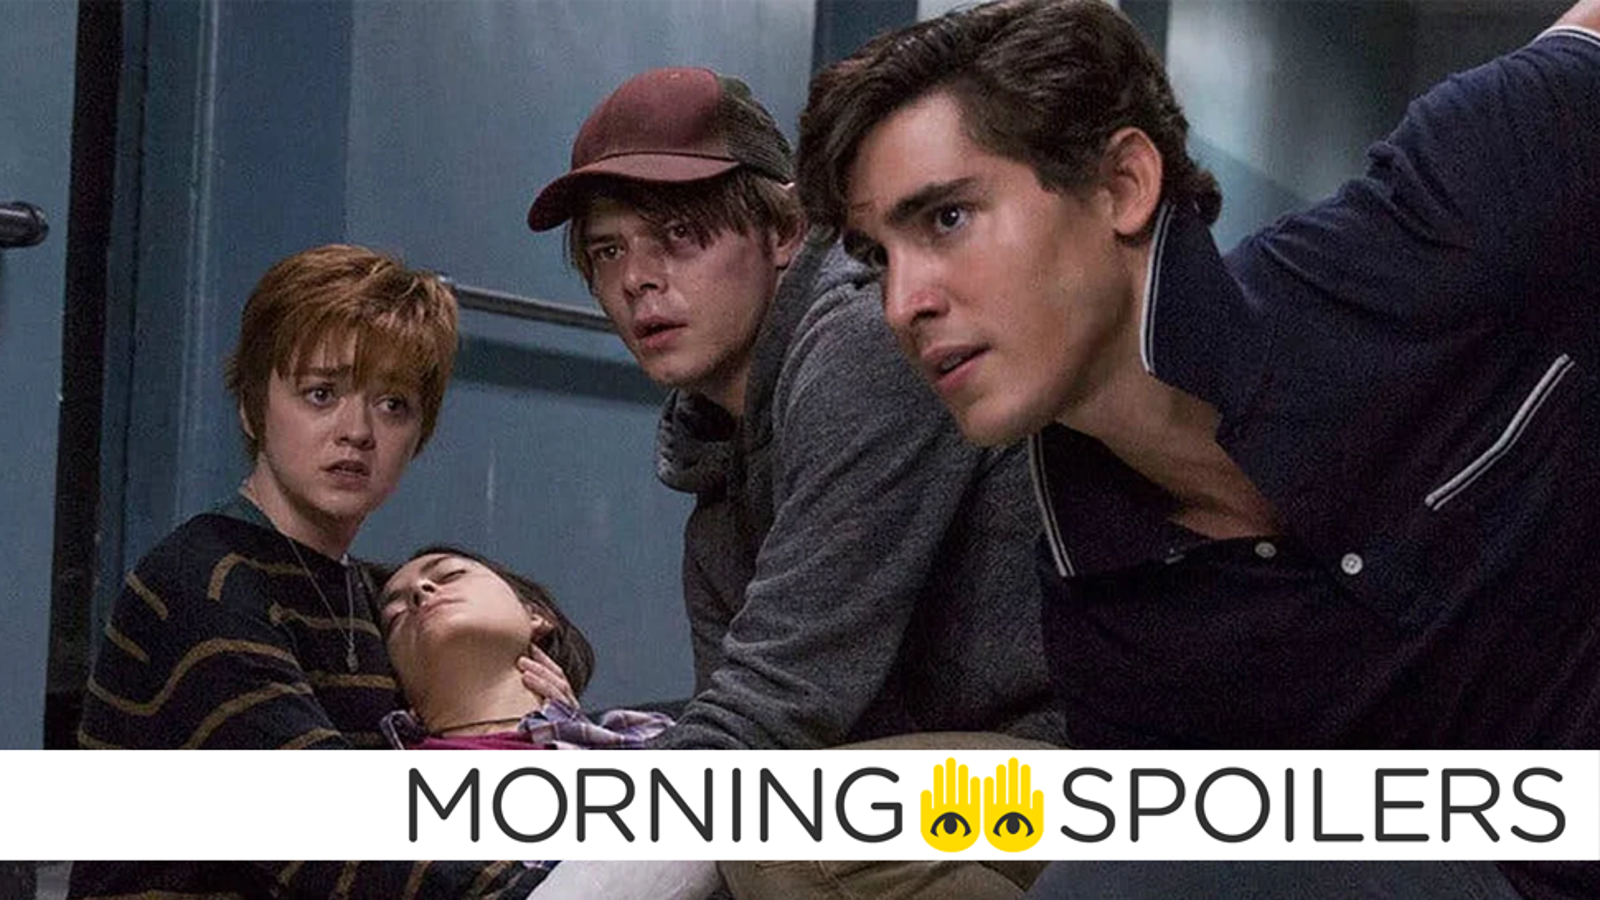 More Wild Rumors About the Future of the New Mutants Movie